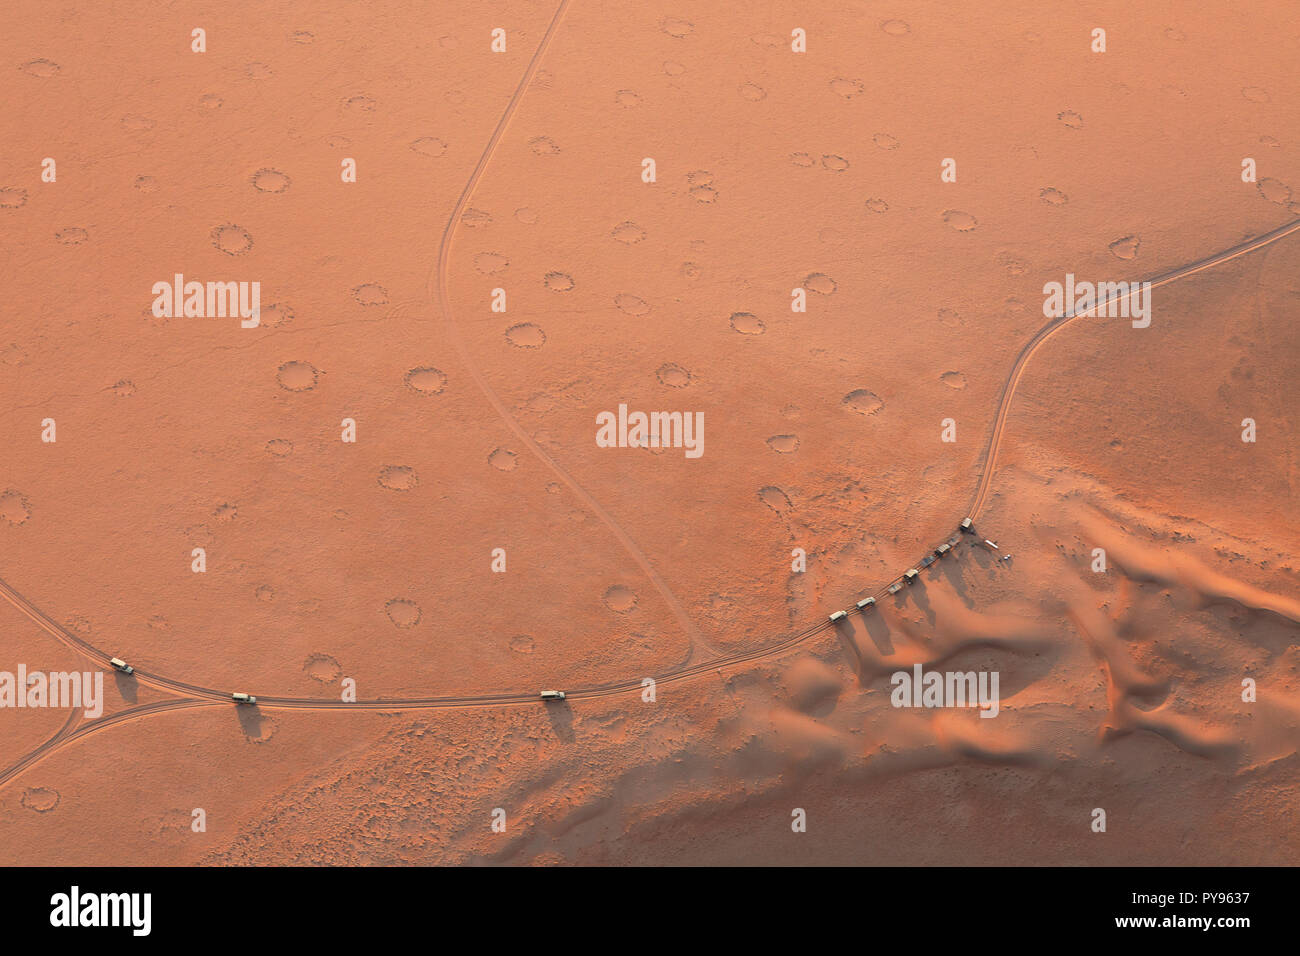 Namibia Fairy Circles seen in the Namib desert from above- cause unknown, namibia desert at Sossusvlei, Namibia Africa - Stock Image